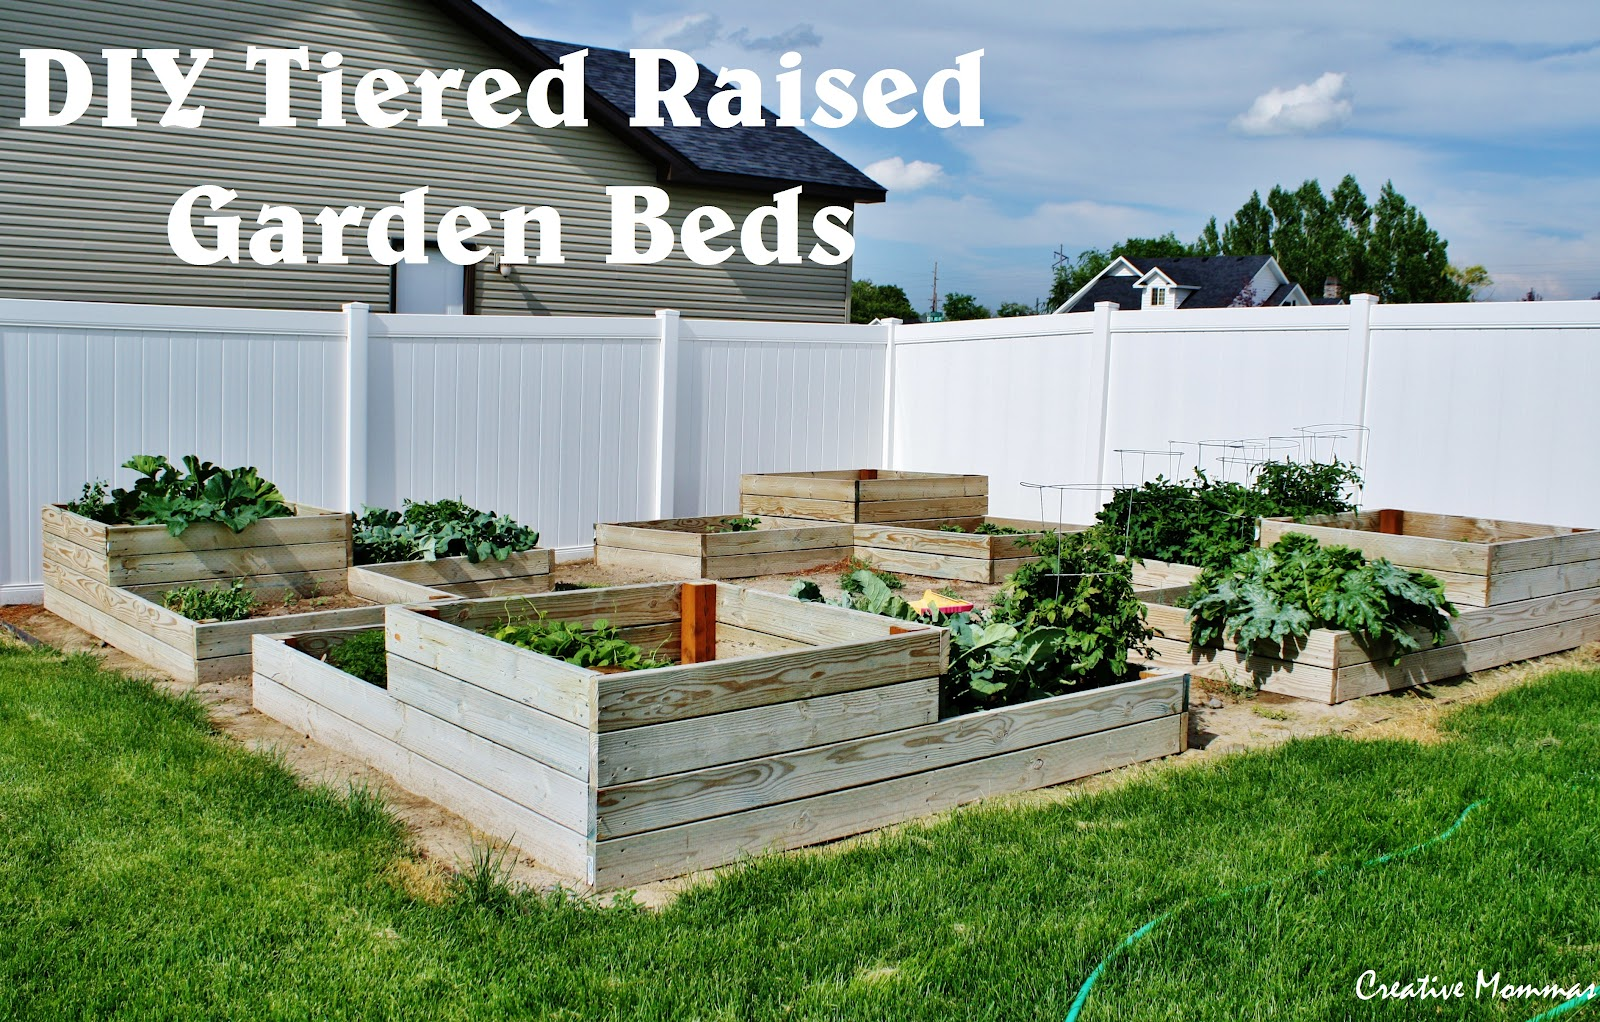 Creative Mommas: DIY Tiered Raised Garden Beds